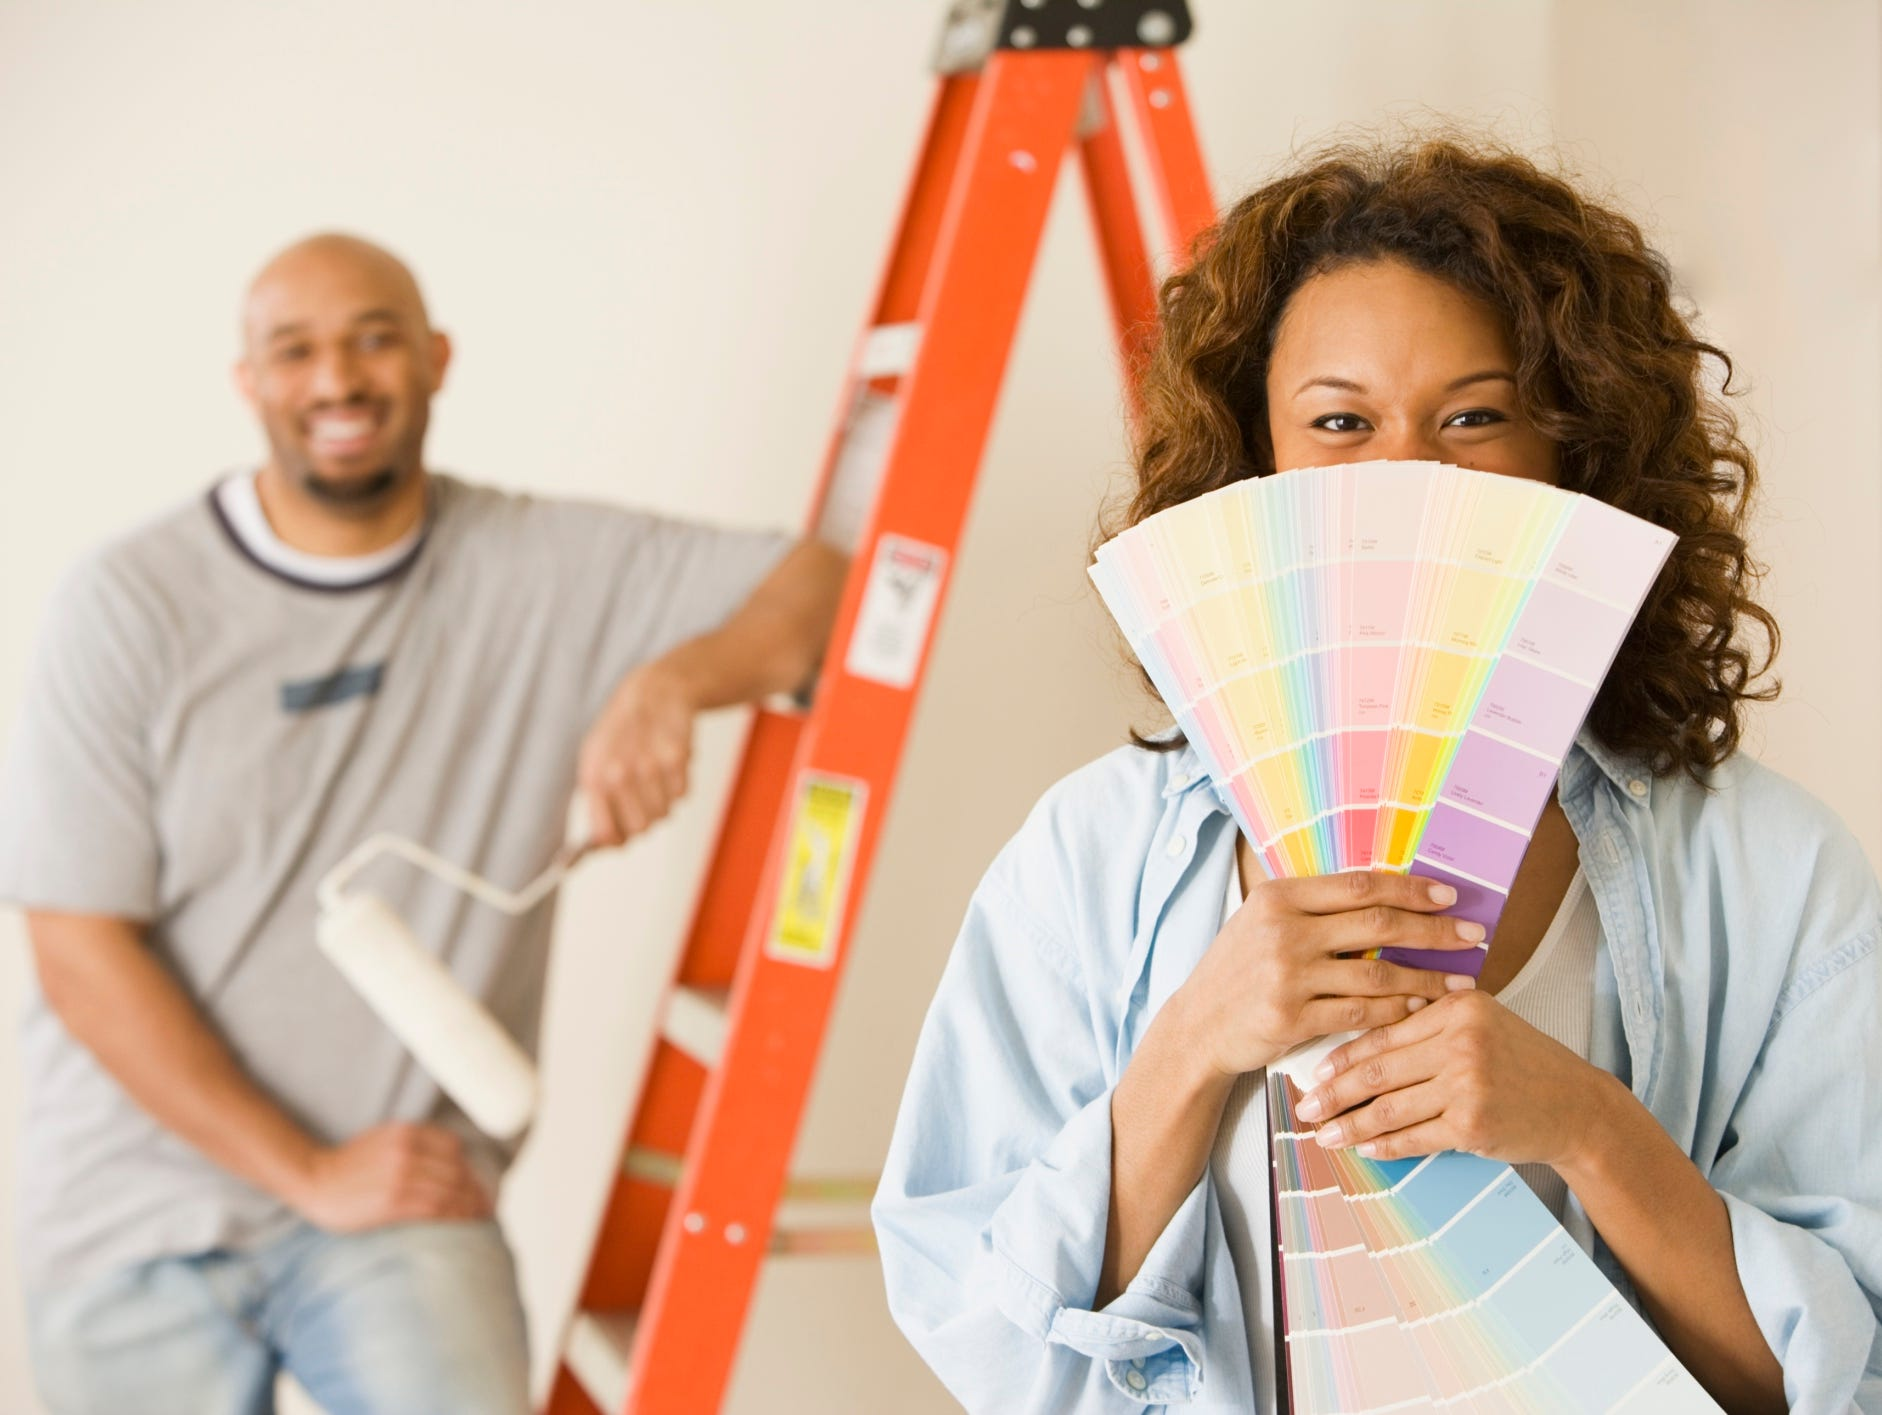 Win a $300 Home Depot gift card to help pay for a DIY project. Enter 3/1 - 3/28